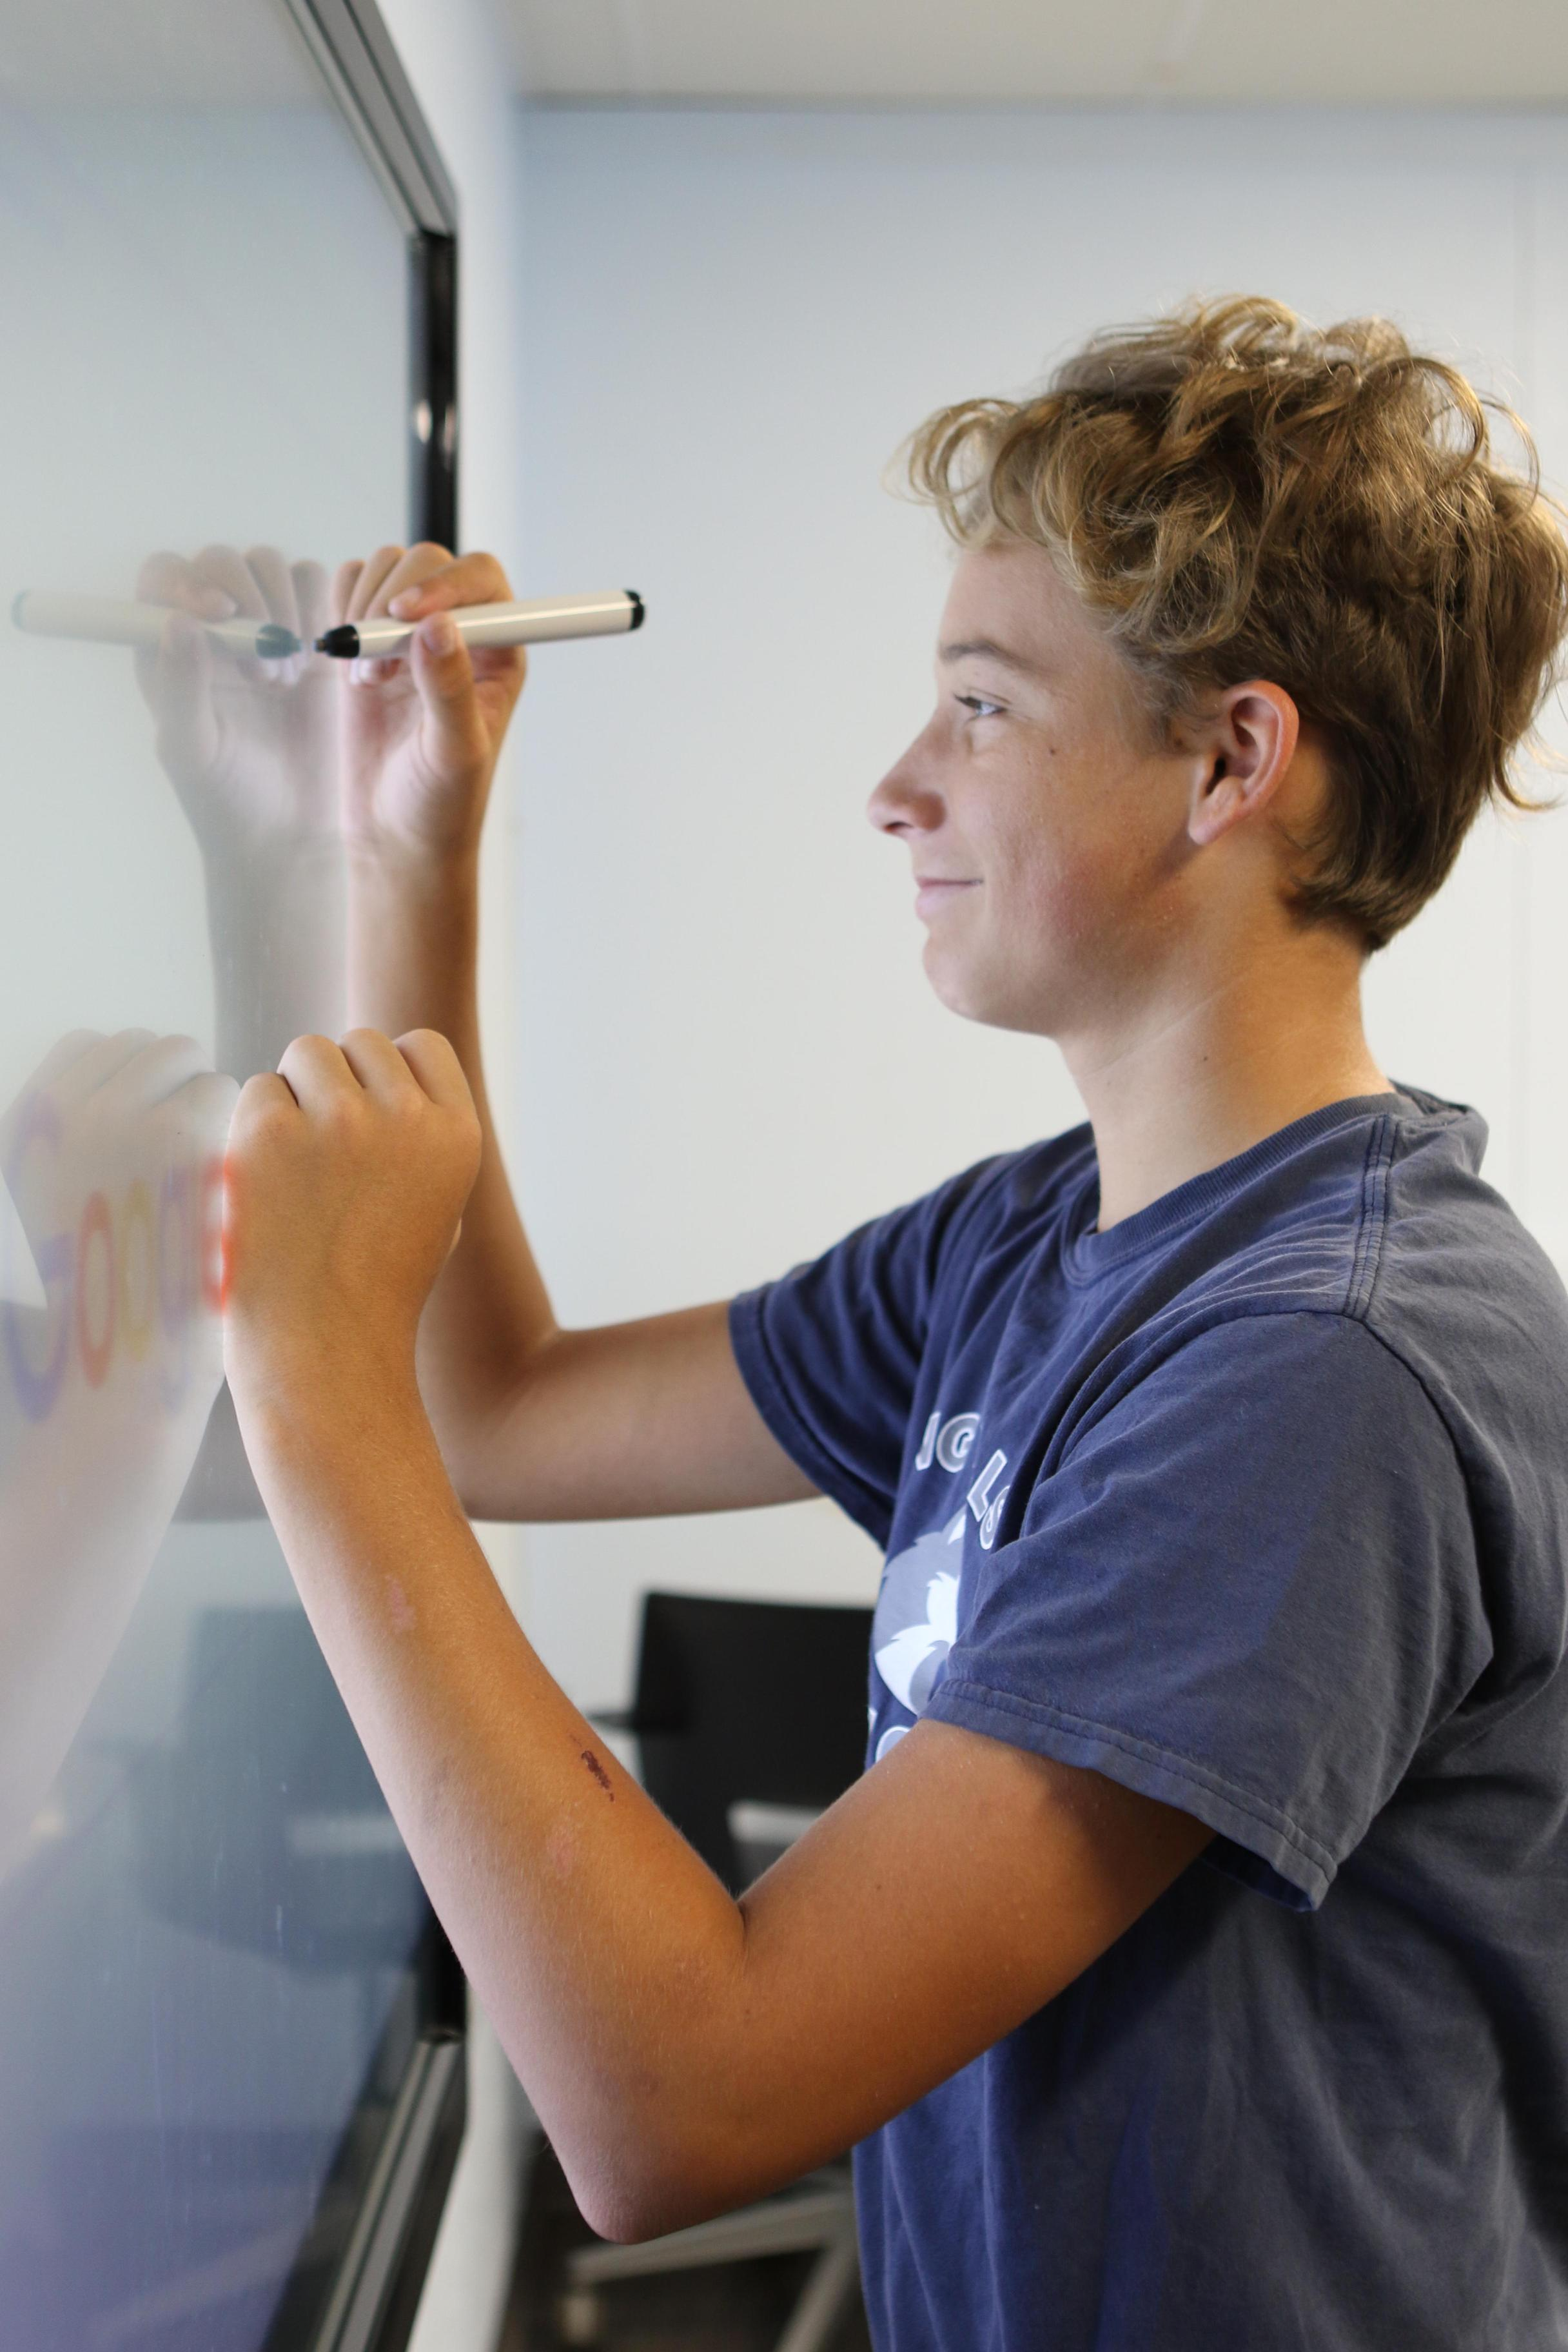 Renaissance student reviewing coursework on a computerized whiteboard.